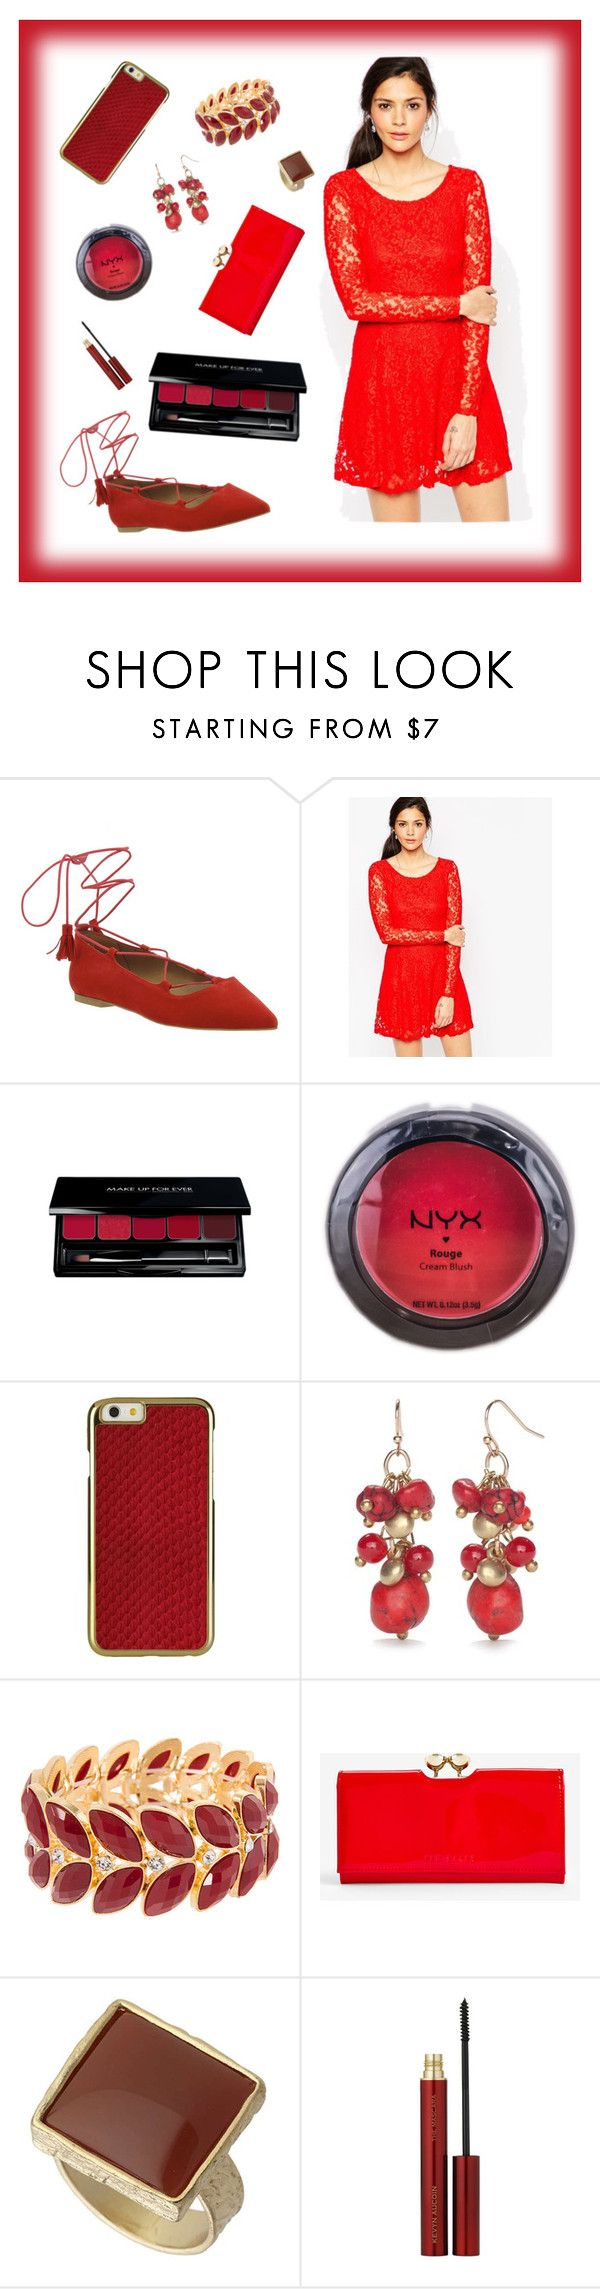 """""""redishhh"""" by xxmichelleg ❤ liked on Polyvore featuring Office, WalG, NYX, New Directions, Ted Baker, Dorothy Perkins and Kevyn Aucoin"""